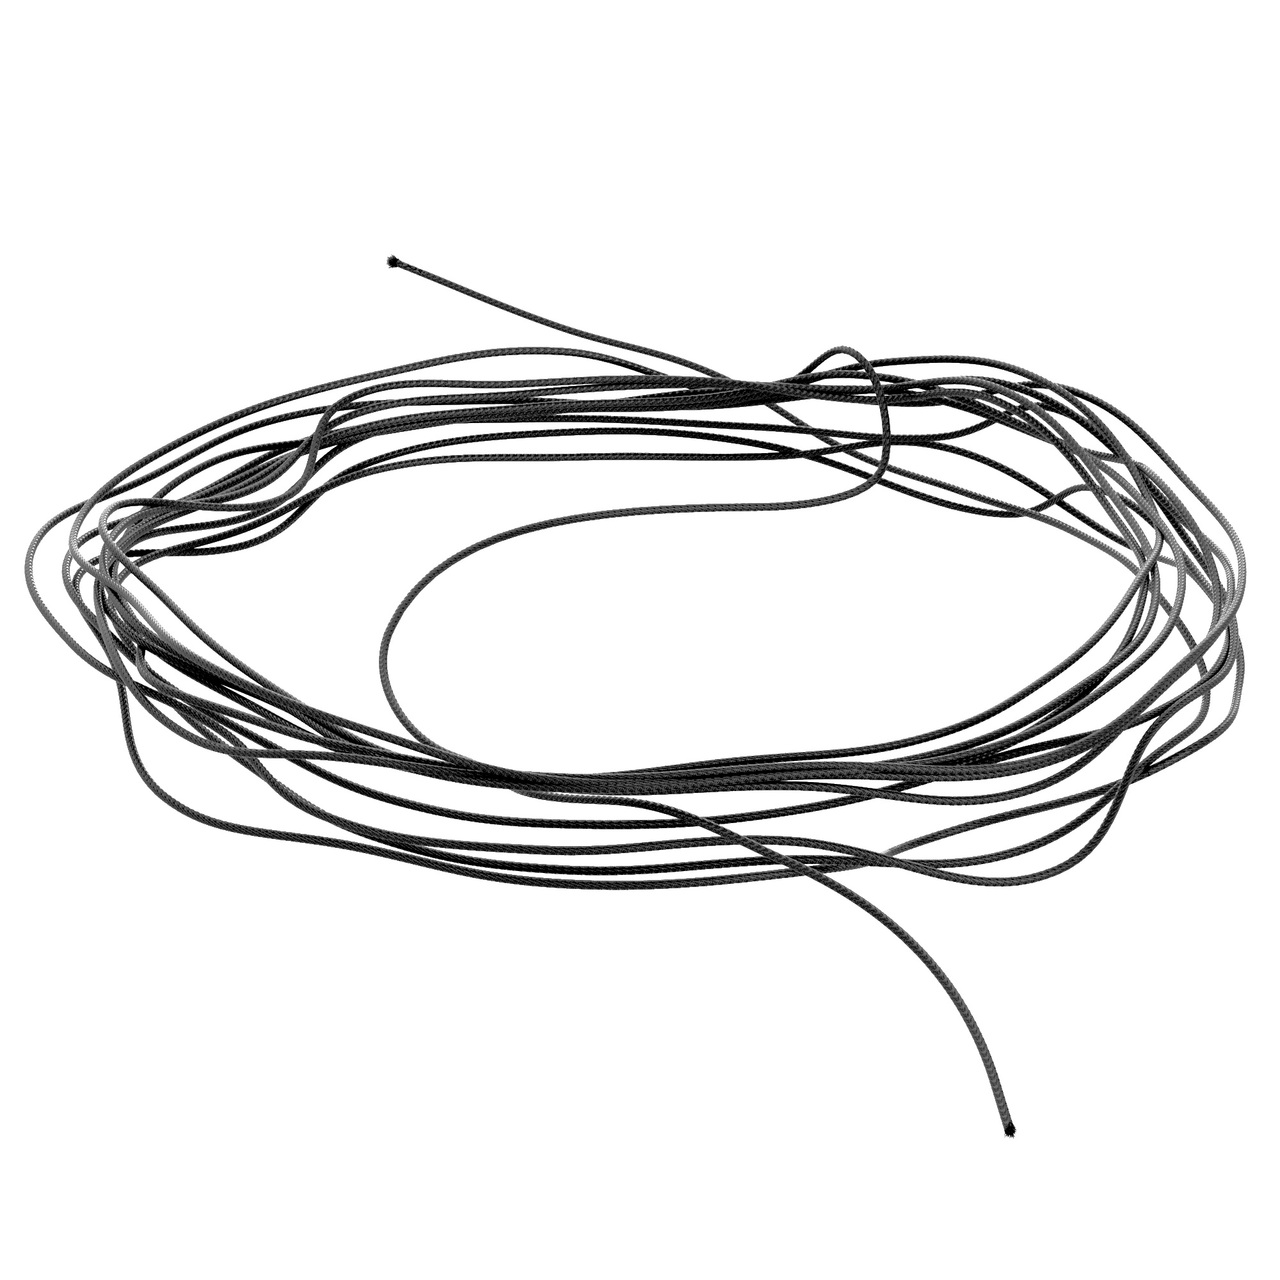 2908-0075-0005 - Synthetic Cable (Black, 0.75mm Diameter, 5M Length)